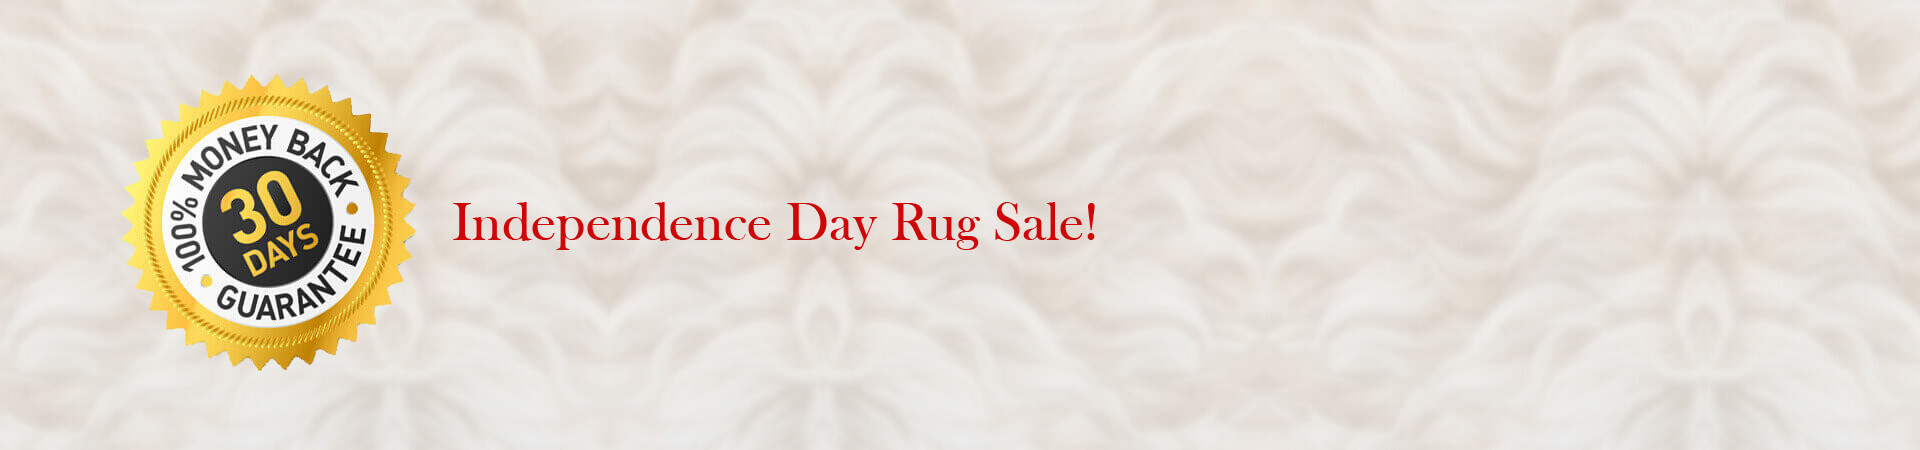 Independence Day Rug Sale